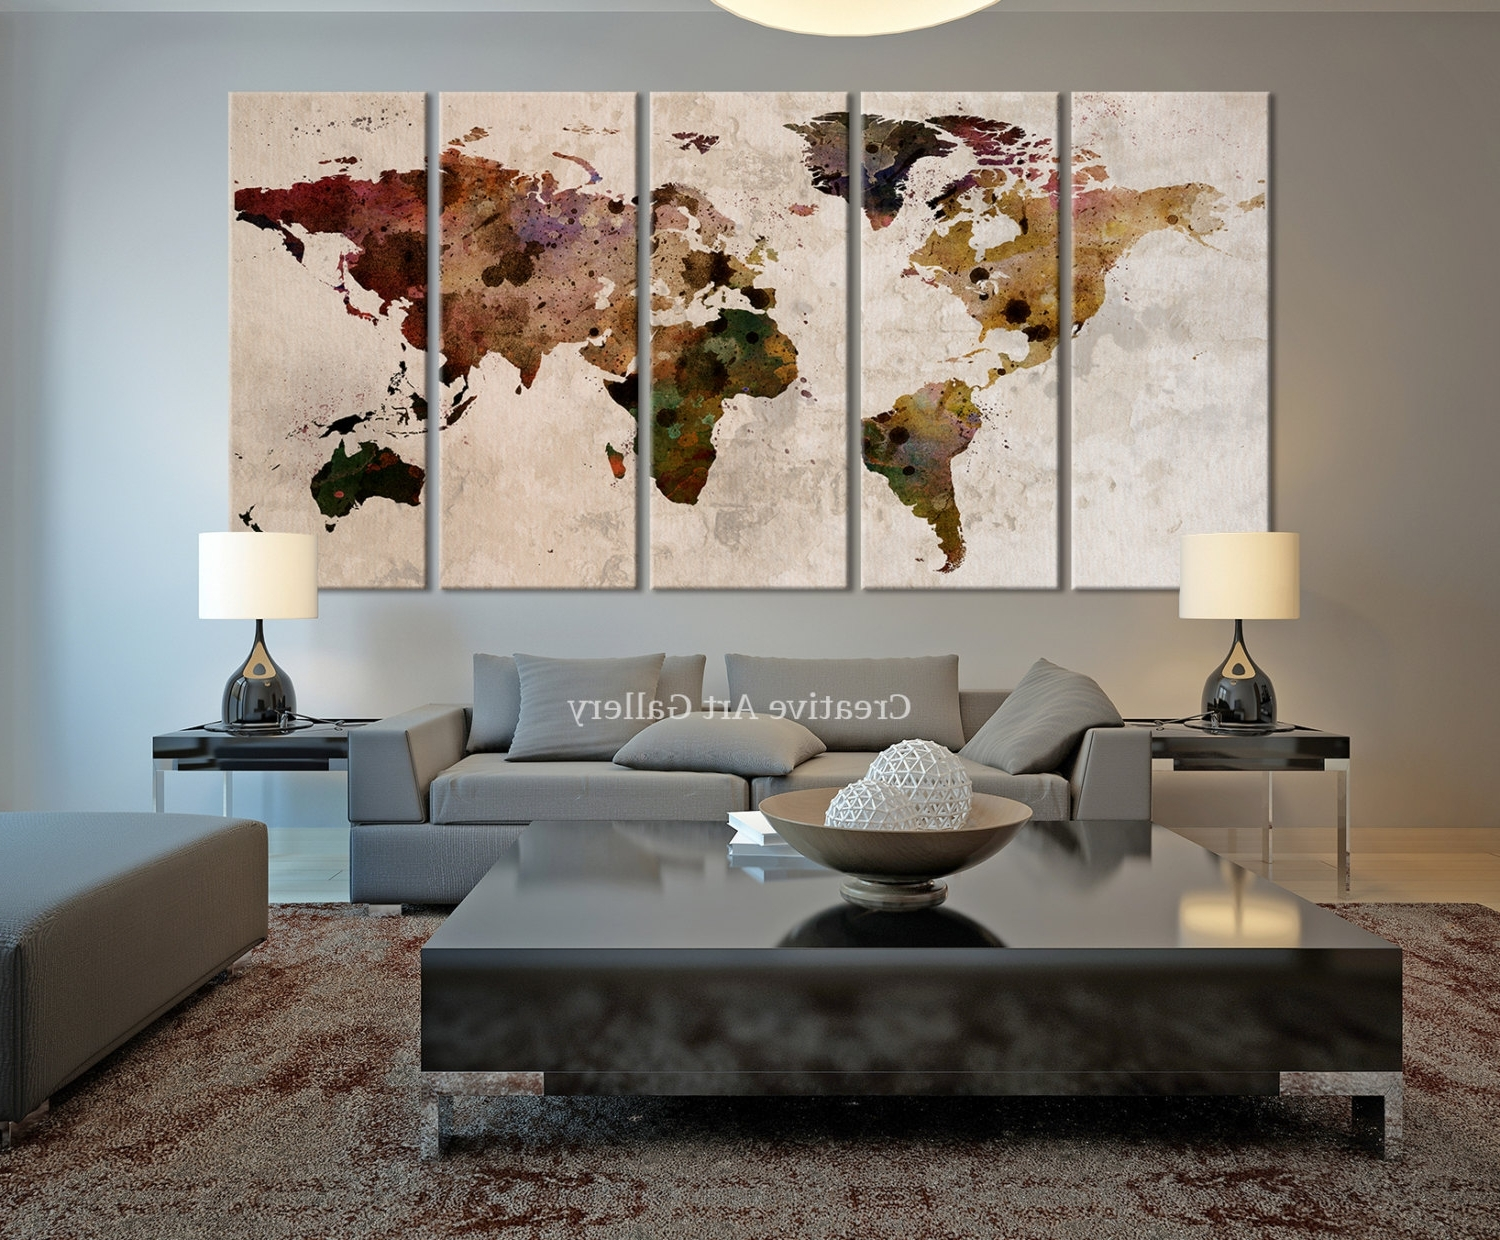 Preferred 20+ Rustic Wall Decor Ideas To Help You Add Rustic Beauty To Your With Regard To Abstract World Map Wall Art (View 12 of 15)